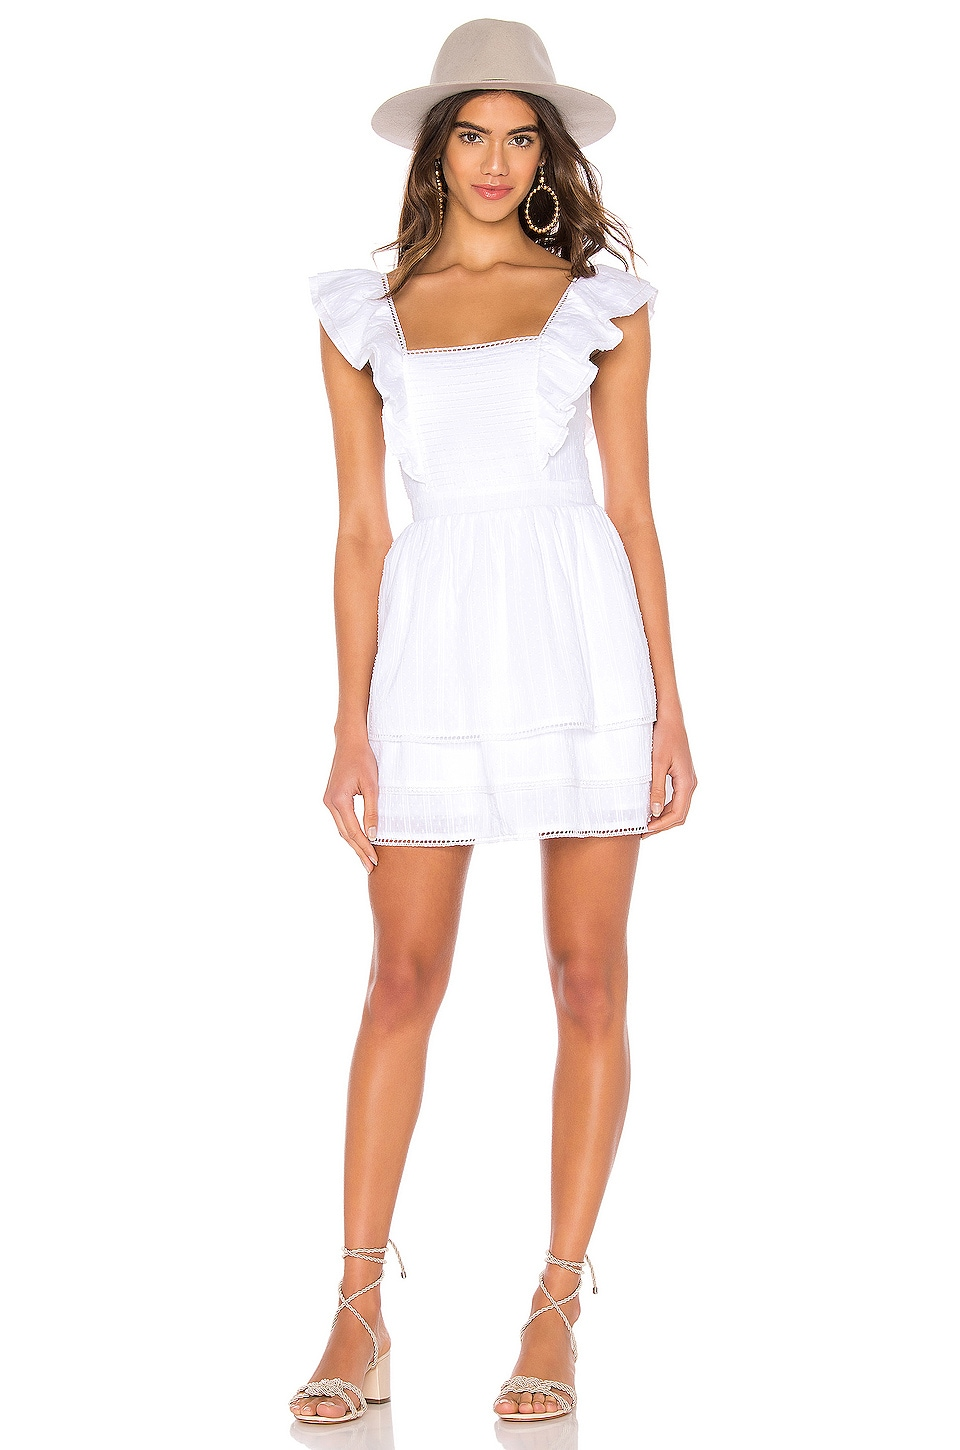 MAJORELLE Bungalow Dress in White